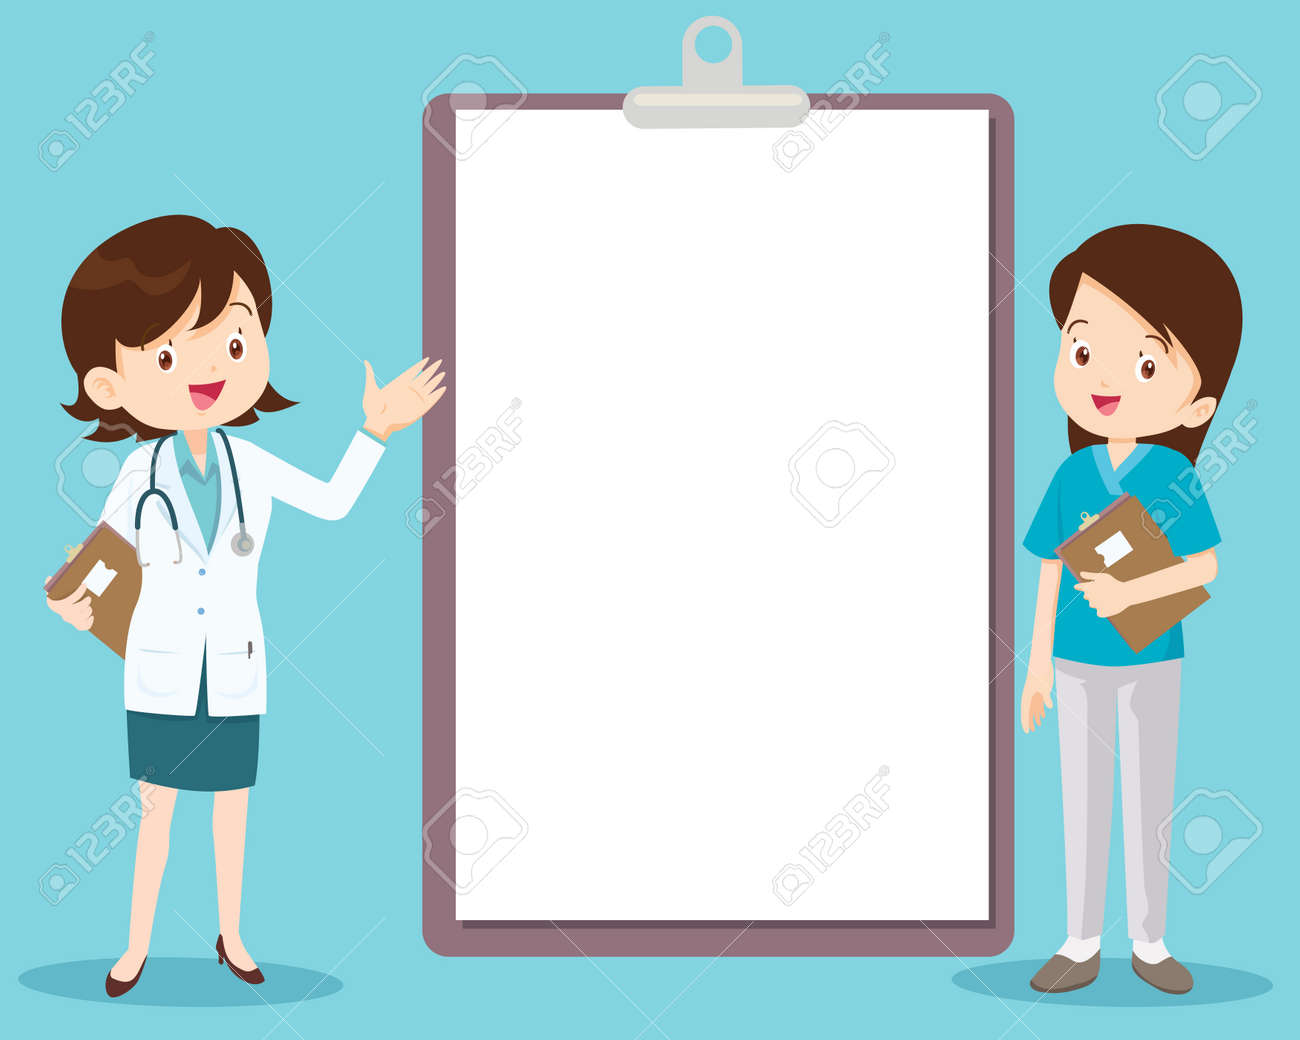 doctor and nurse standing next to information board the can place your text ,Doctor with medical report on clipboard - 166467684